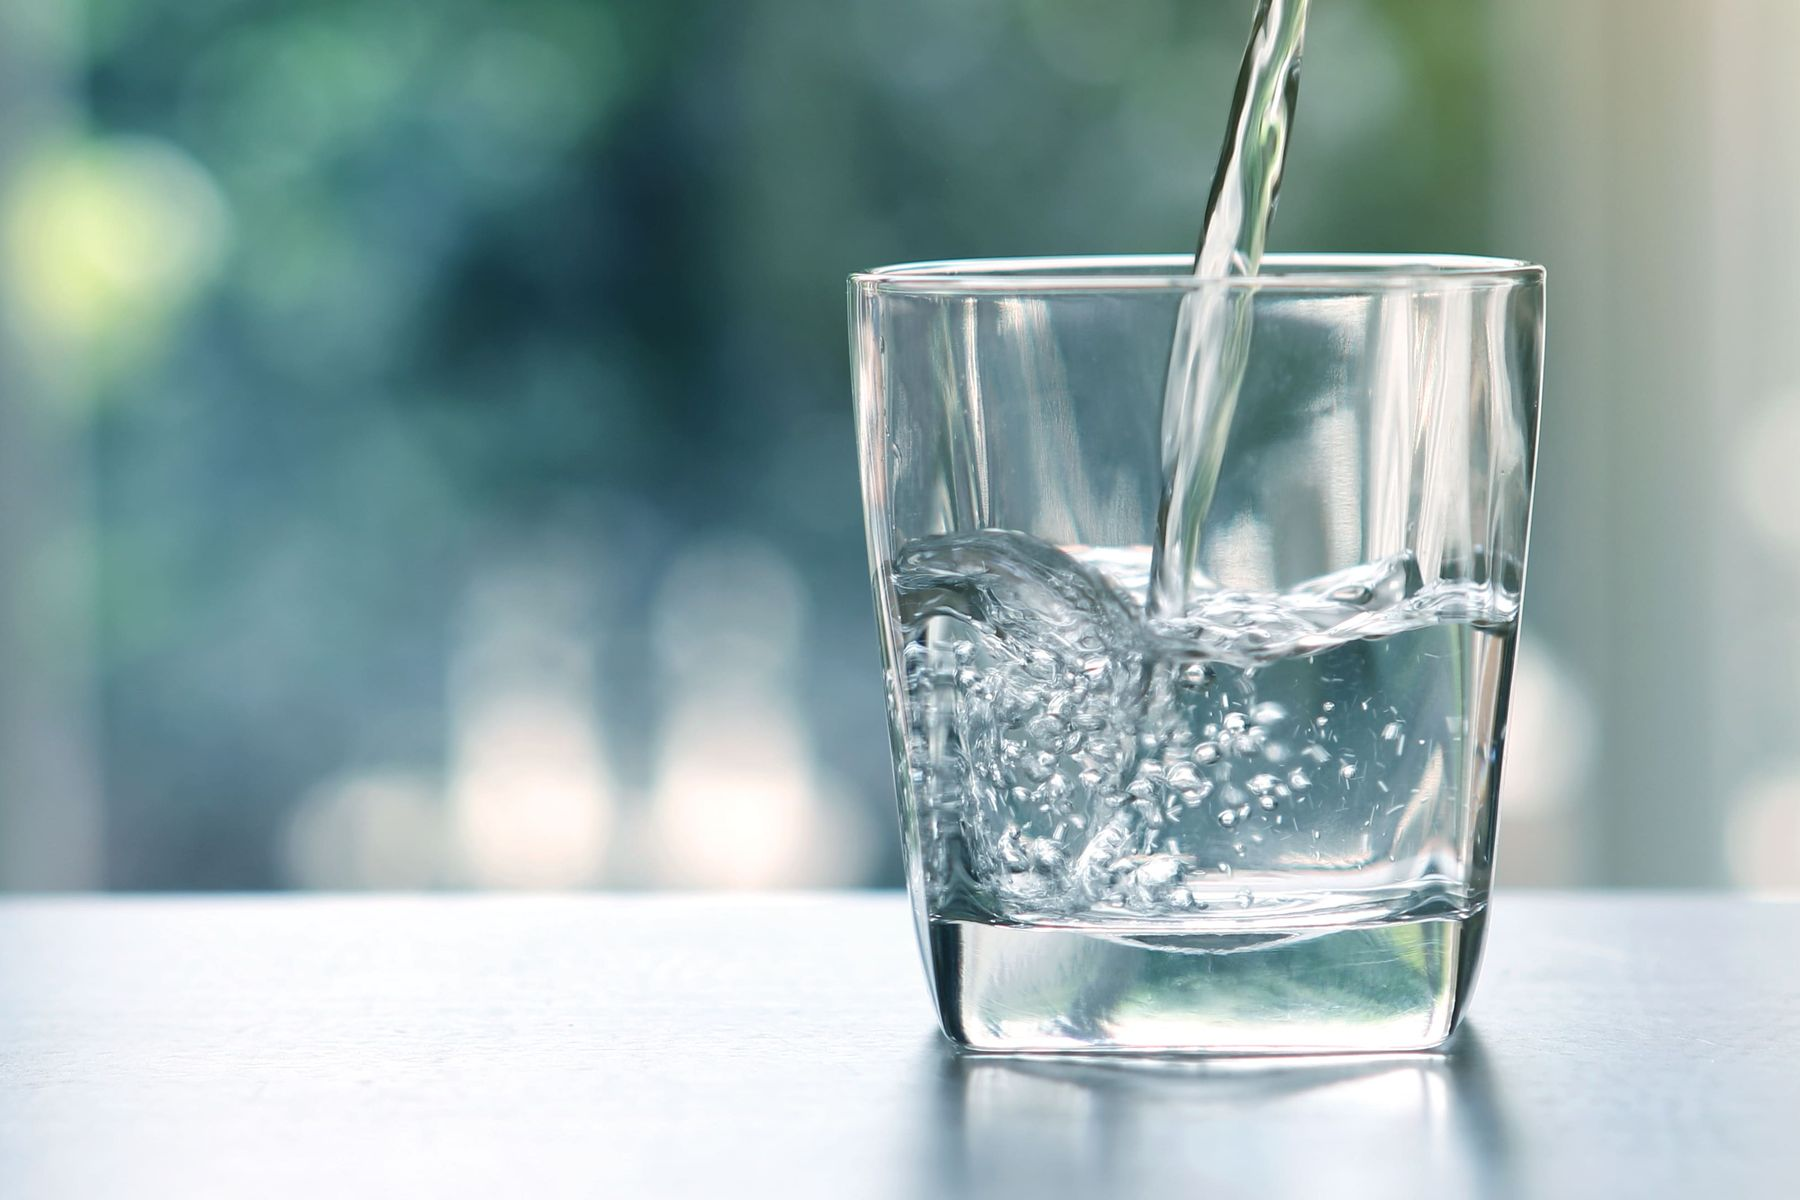 a glass of water in front of a window